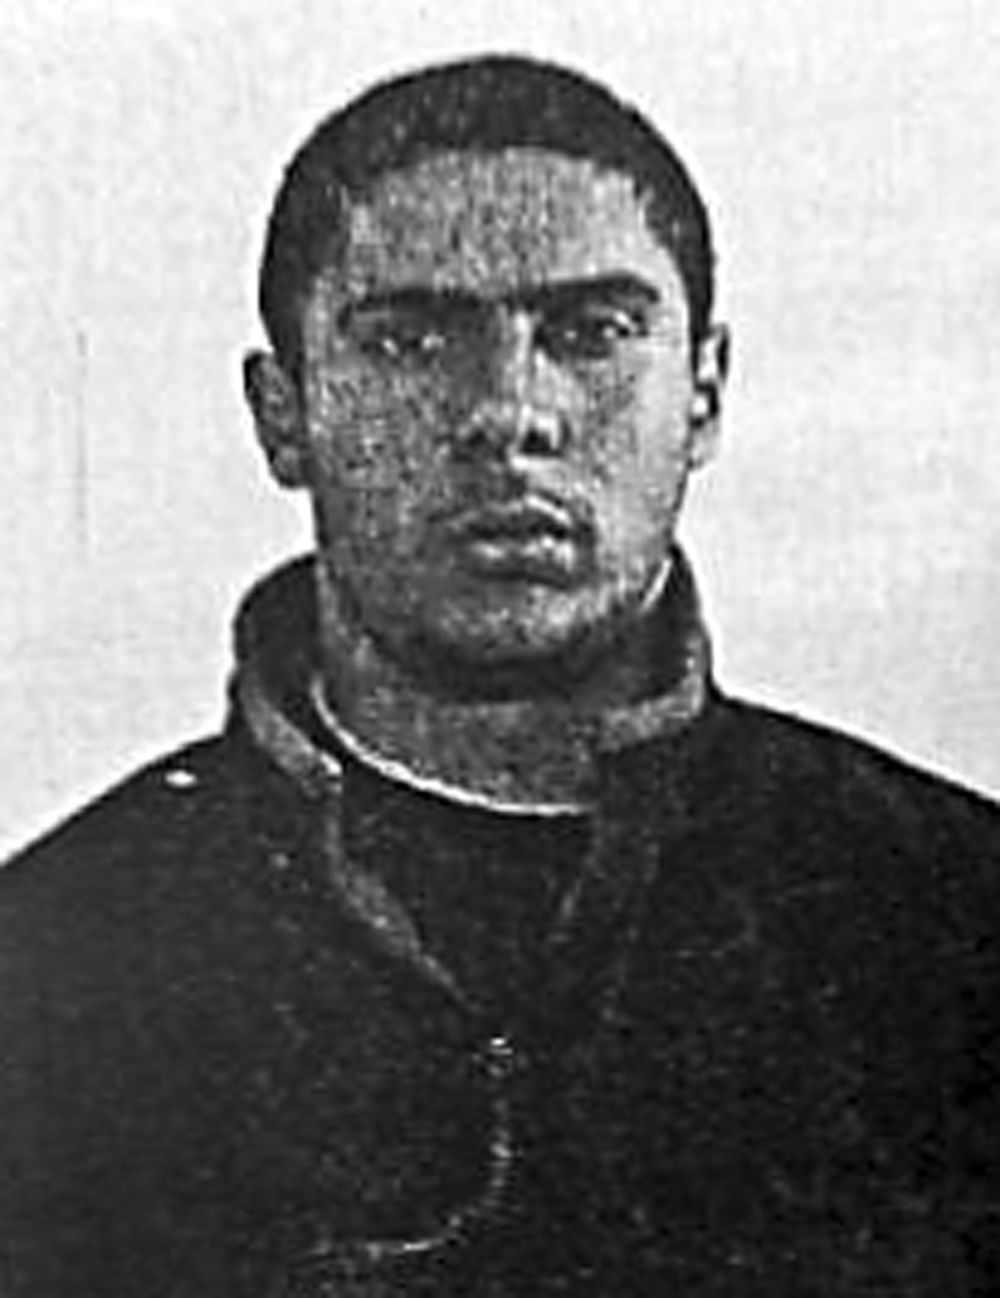 A file picture released June 1, 2014, shows the 29-year-old suspected gunman Mehdi Nemmouche on August 15, 2005. — STR pic via AFP